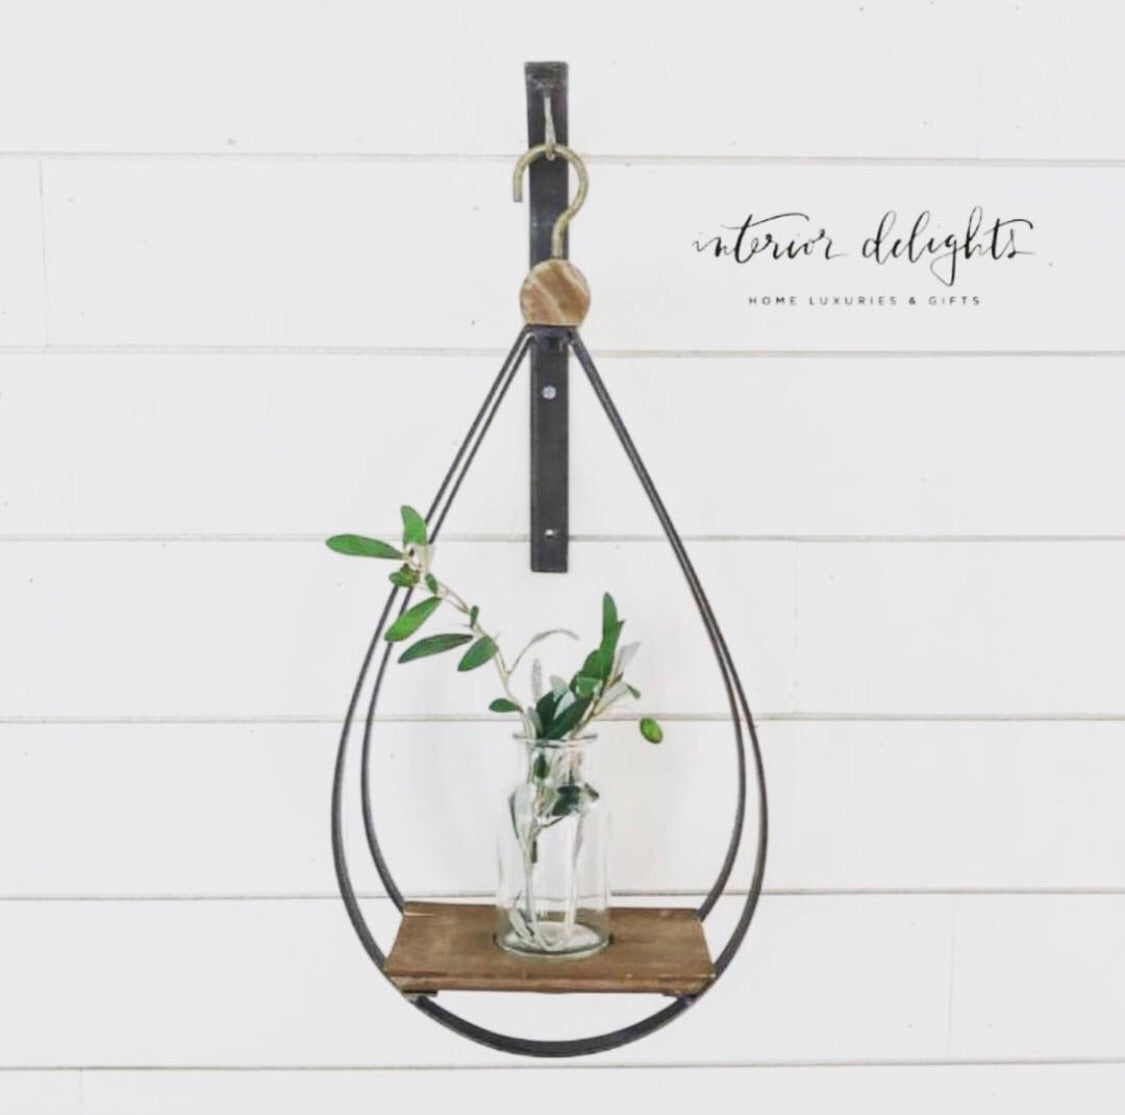 Teardrop Hanging Bottle Holder